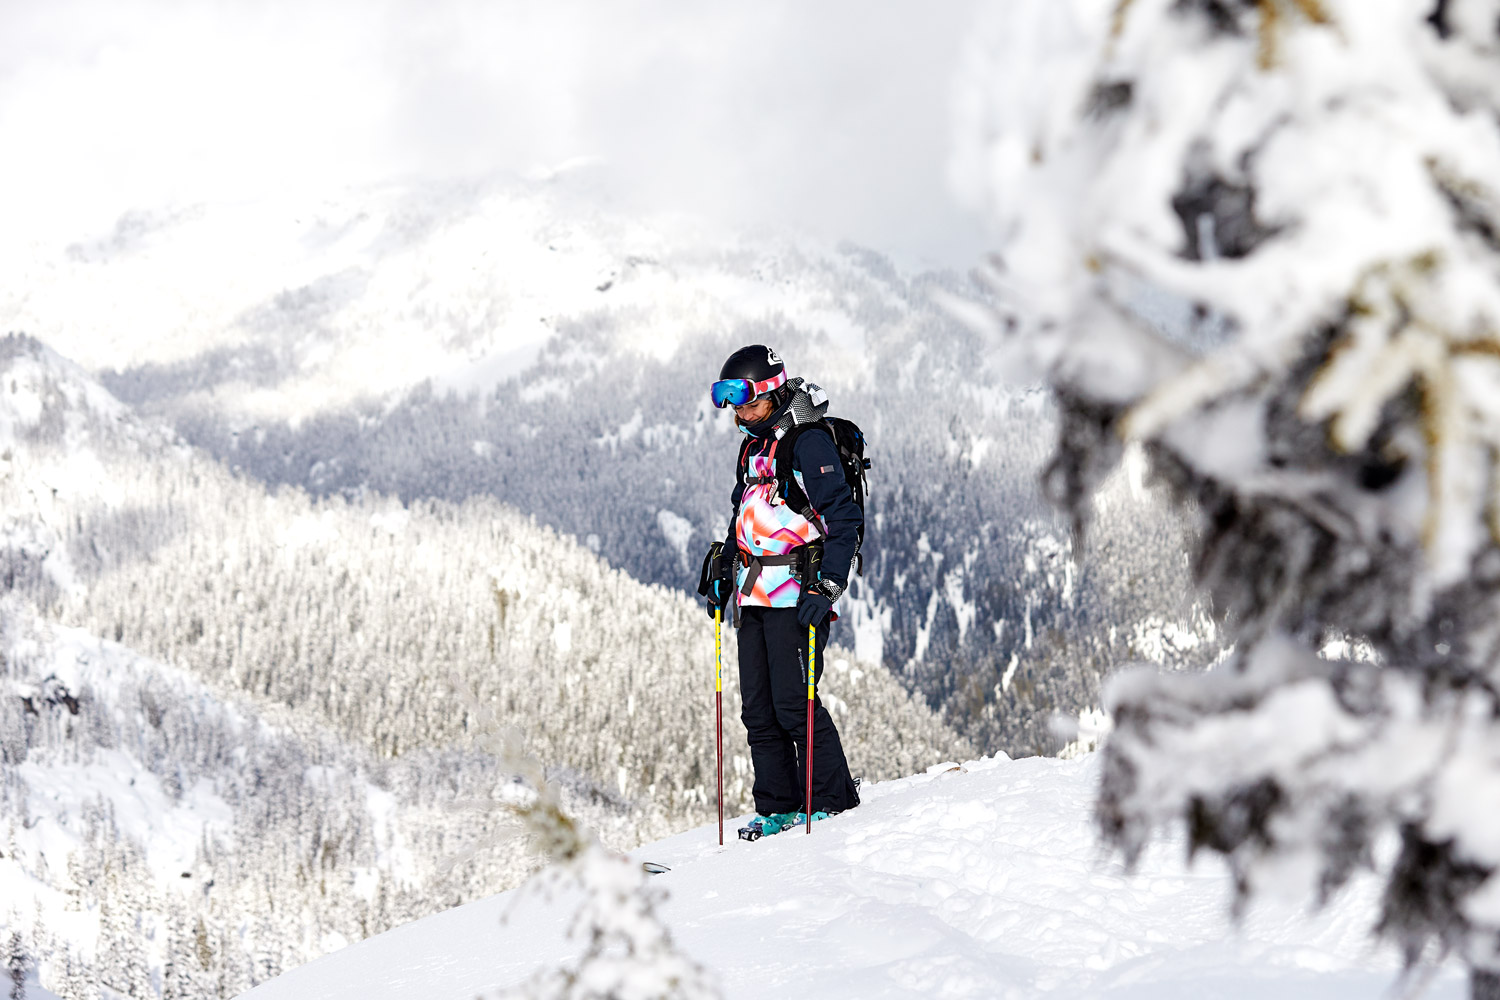 Shred In Style With Our #POPsnow Collection   Roxy Shredding Snow